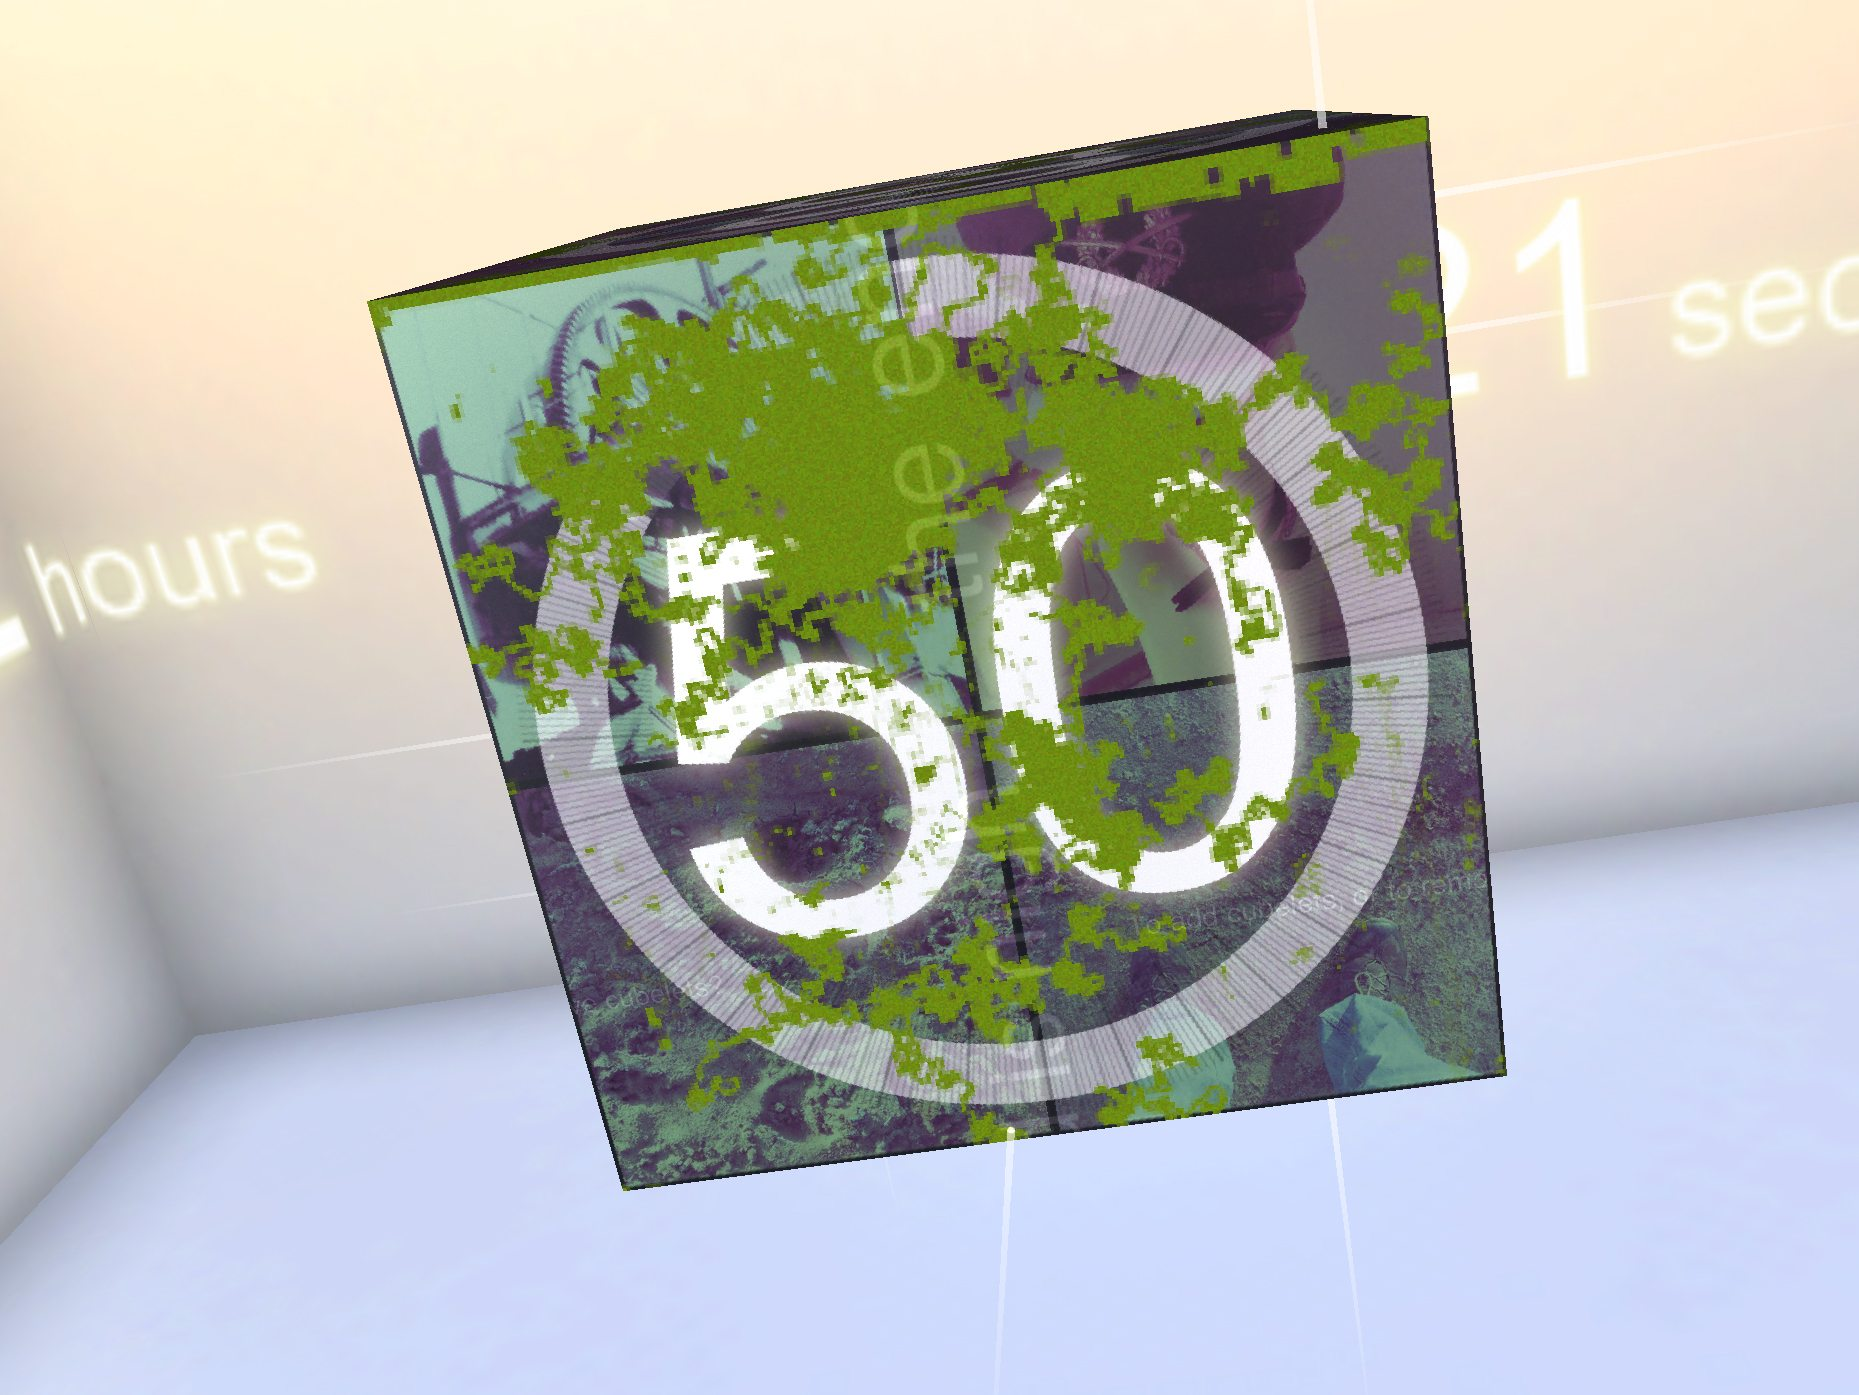 Curiosity - only 50 layers to go!